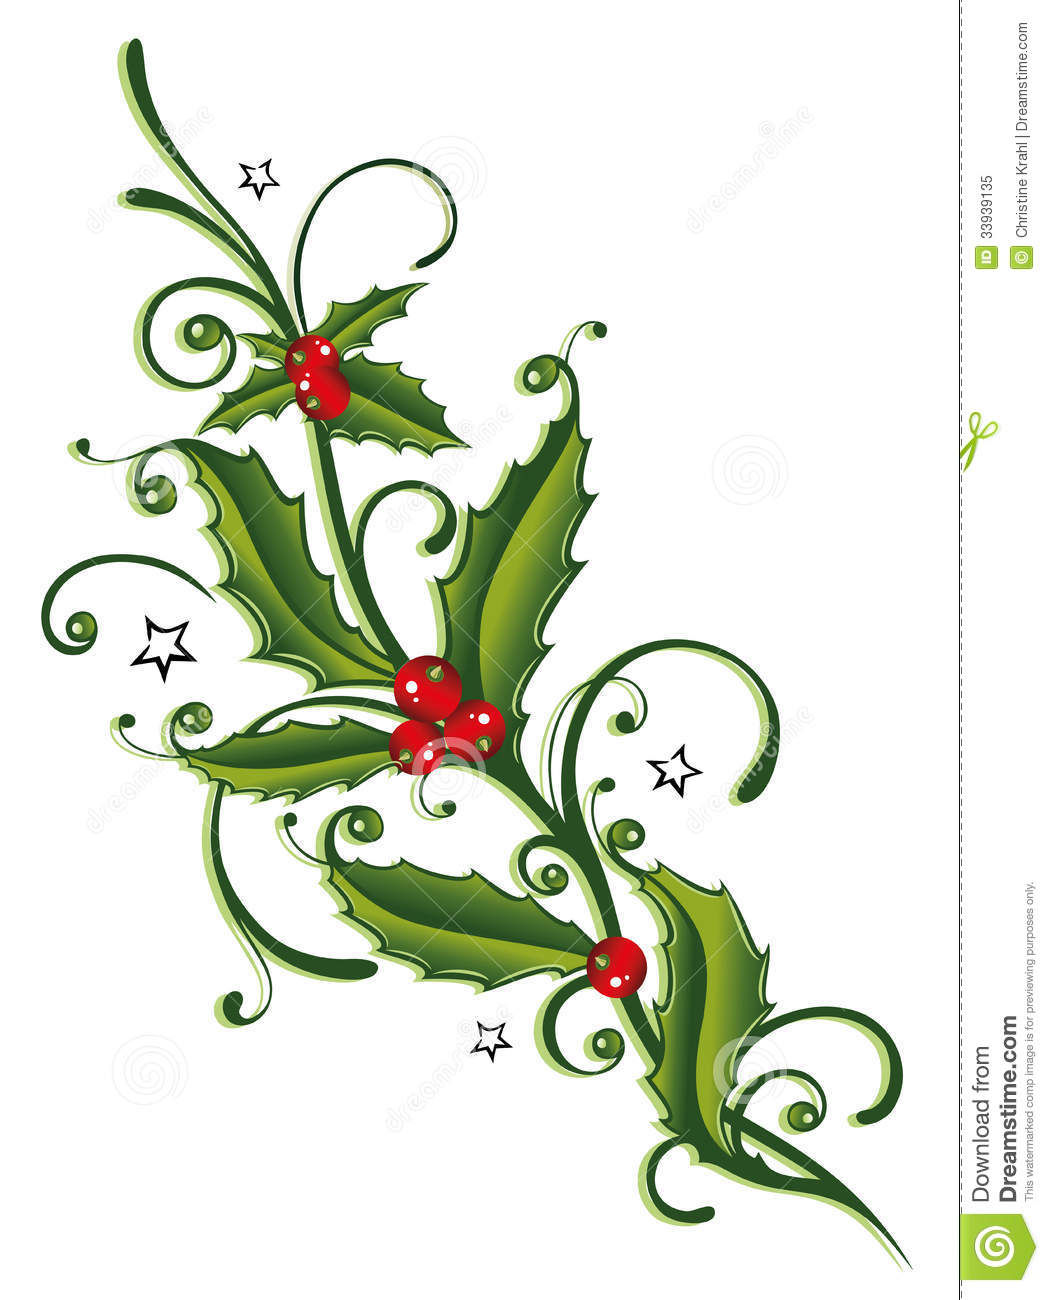 Christmas, Holly, Leaves Royalty Free Stock Photo - Image: 33939135